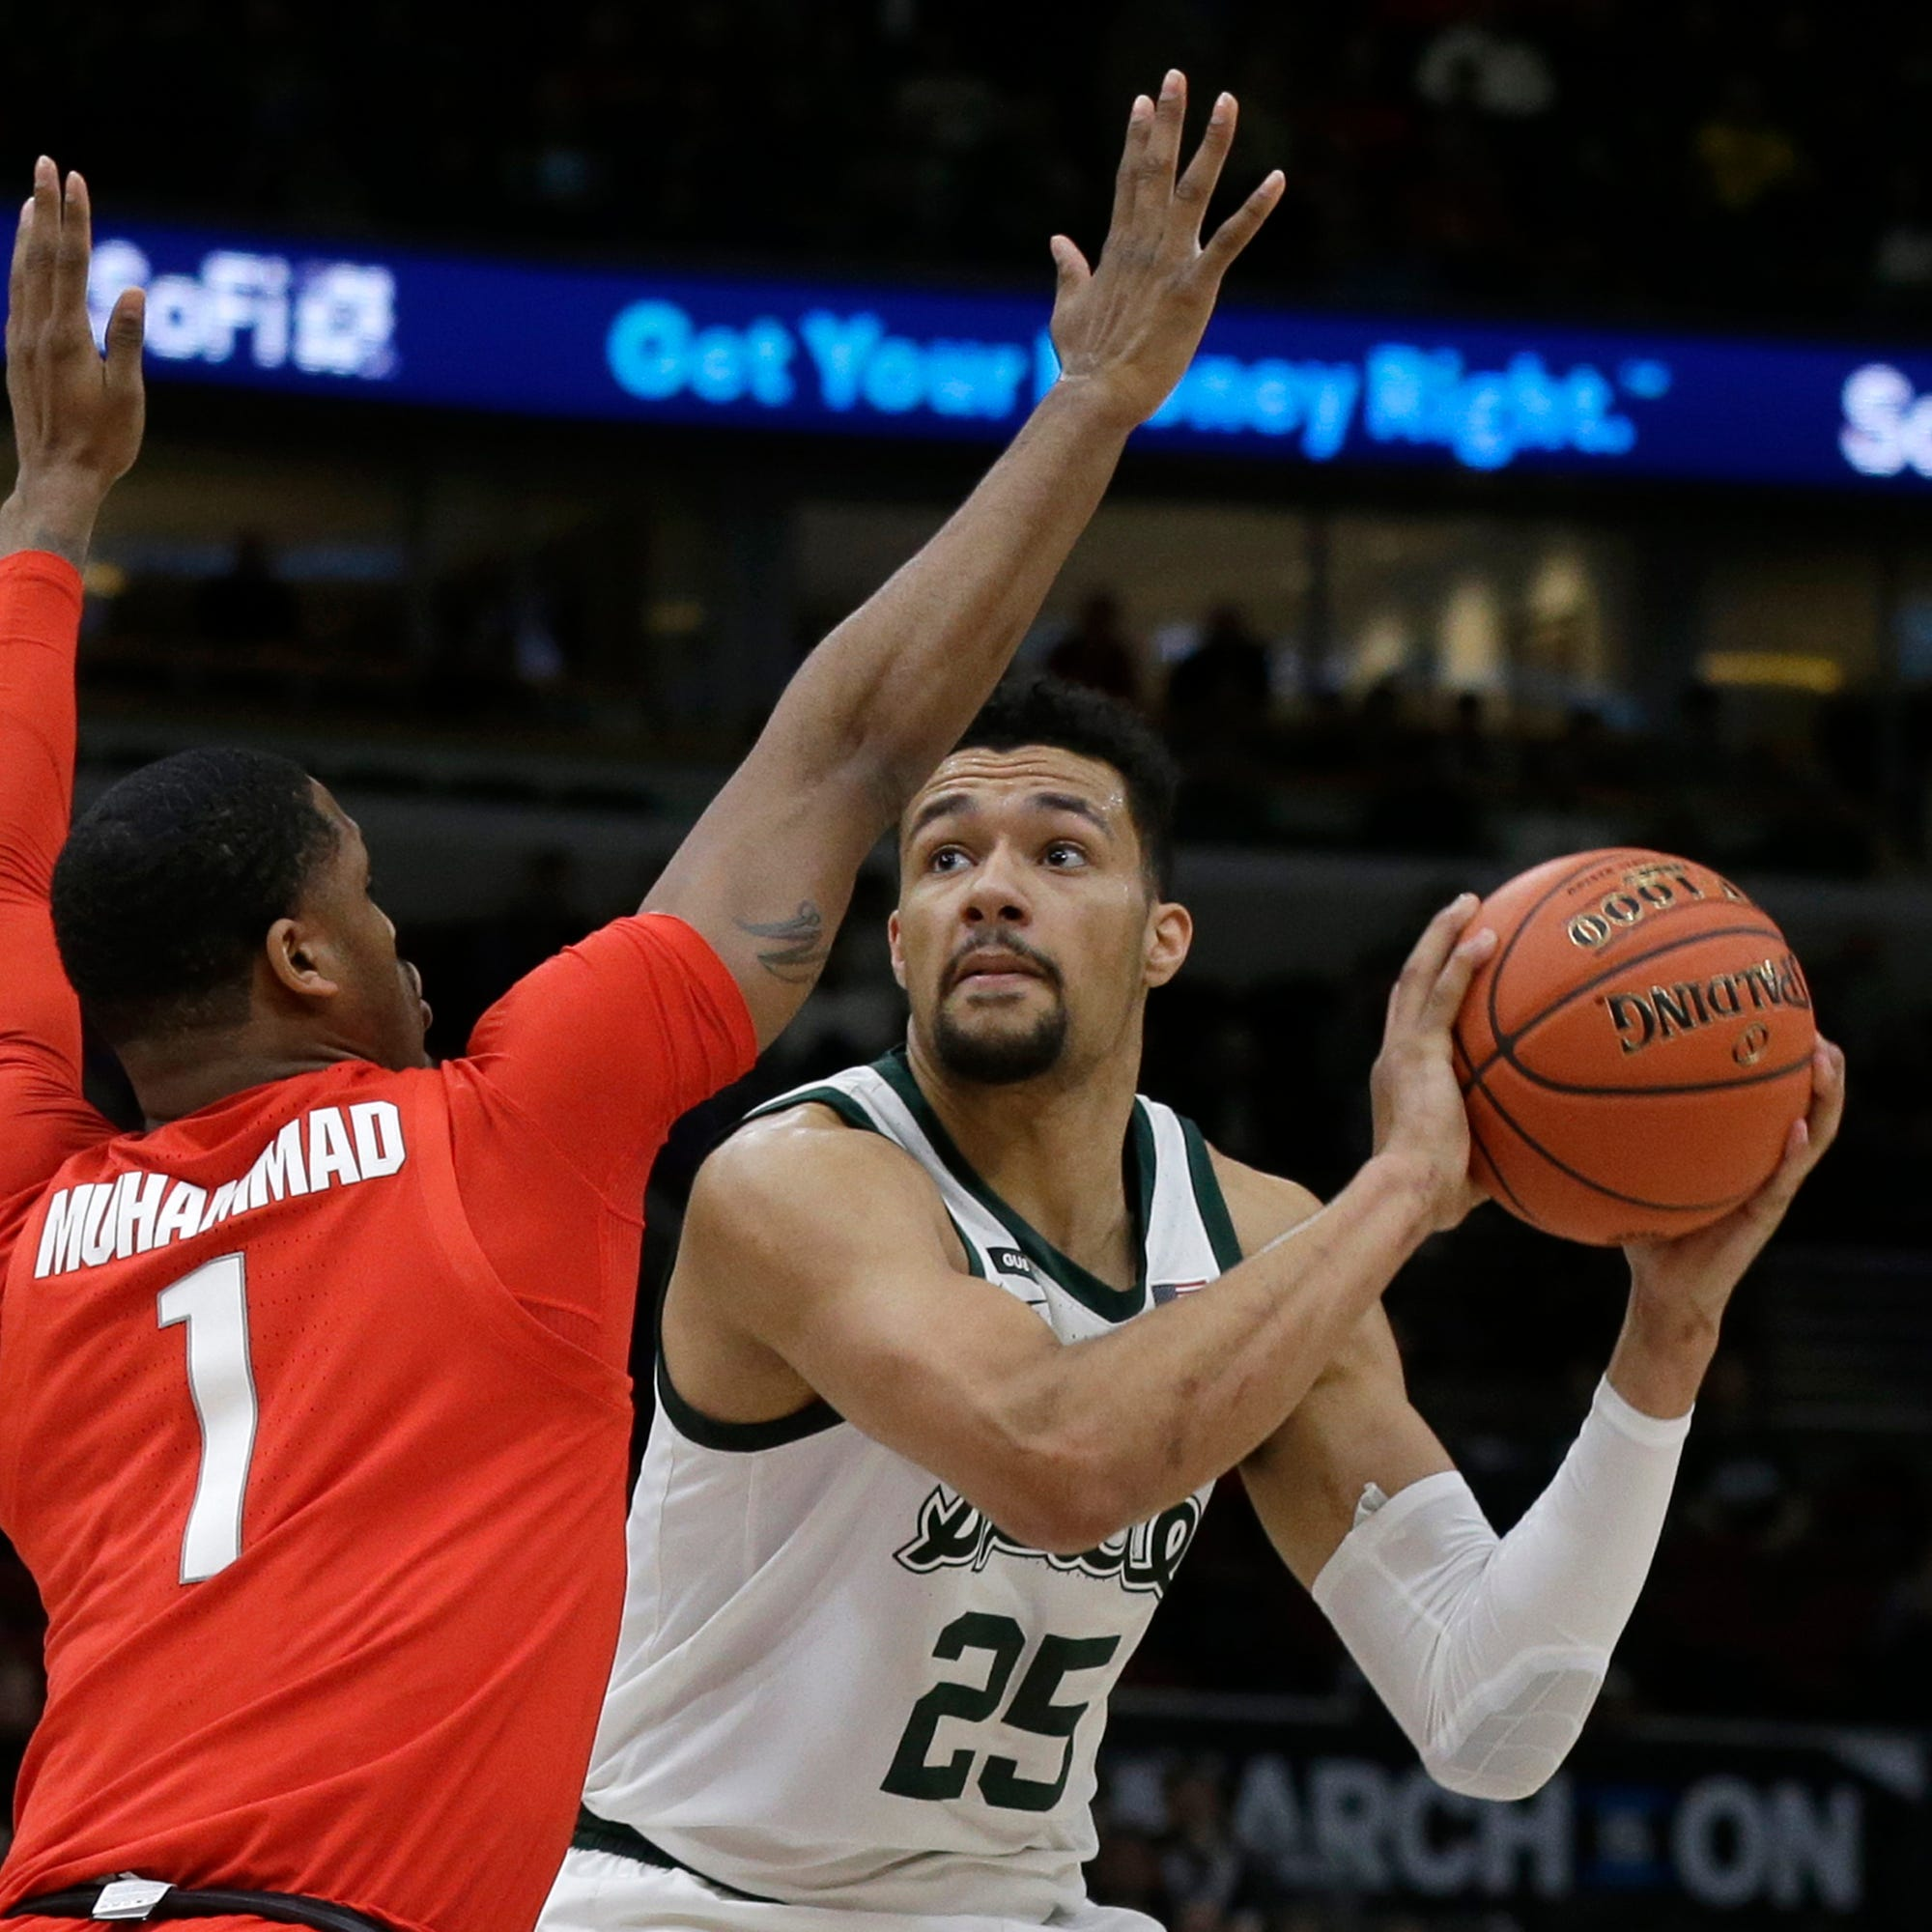 Live updates: Michigan State vs. Wisconsin in Big Ten tournament